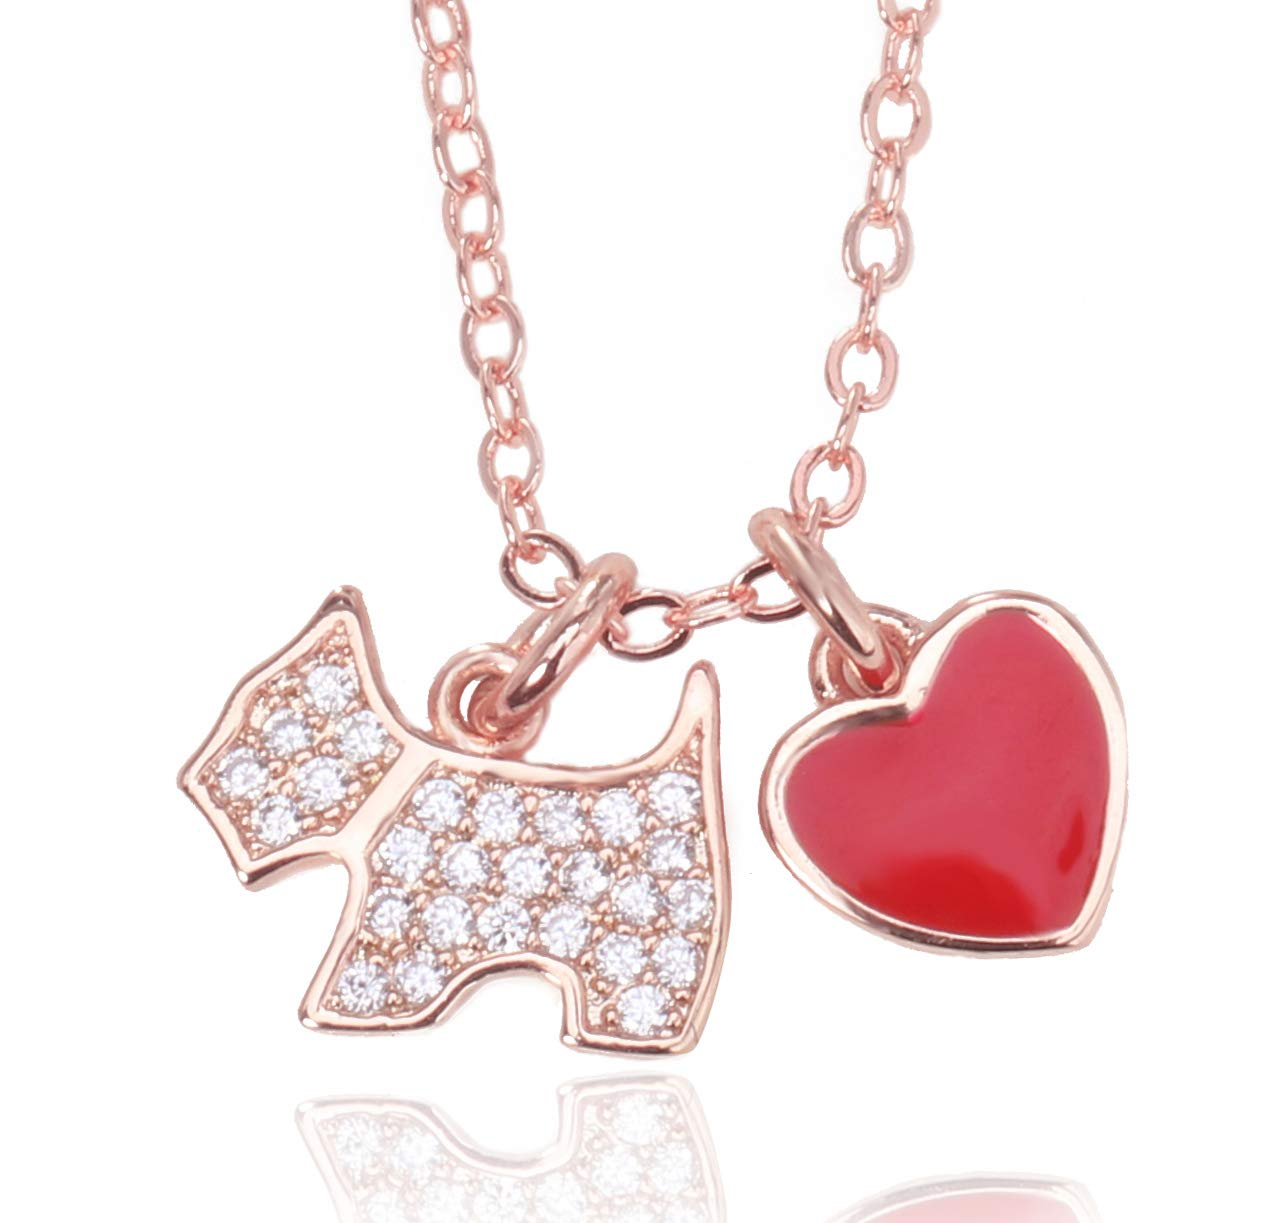 Onlyfo 925 Silver Jade Diamond Accent Dog and Red Heart Pendant Necklace with Jewelry Box,Short Dog Necklace for Women (Rose Gold)